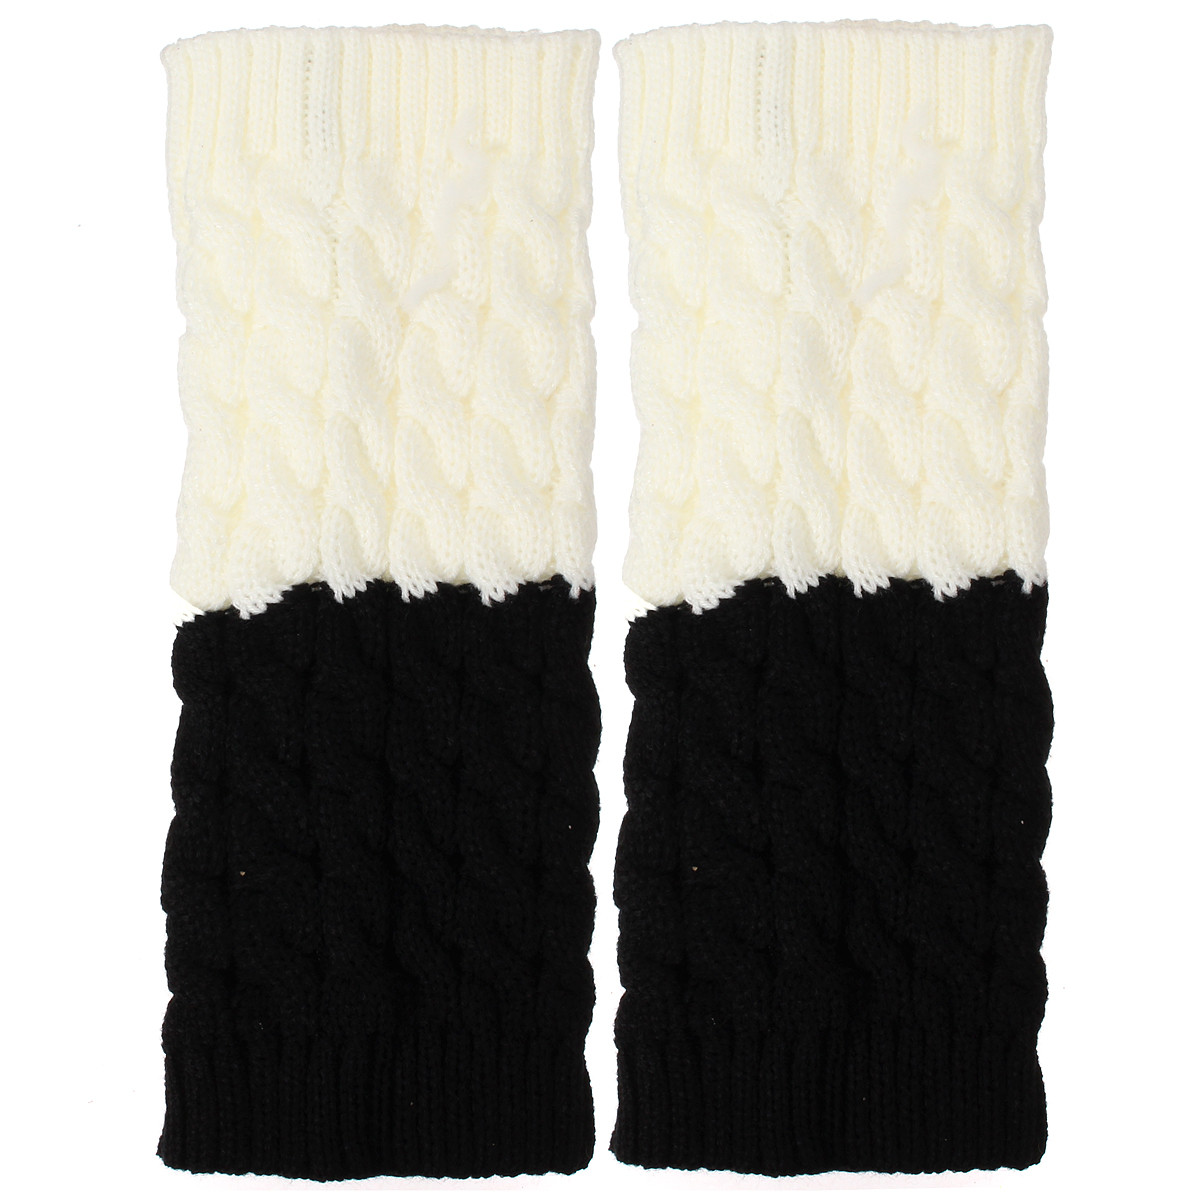 Women Ladies Knitted Thigh High Leg Warmers Socks Winter Boot Short Cuff Socks